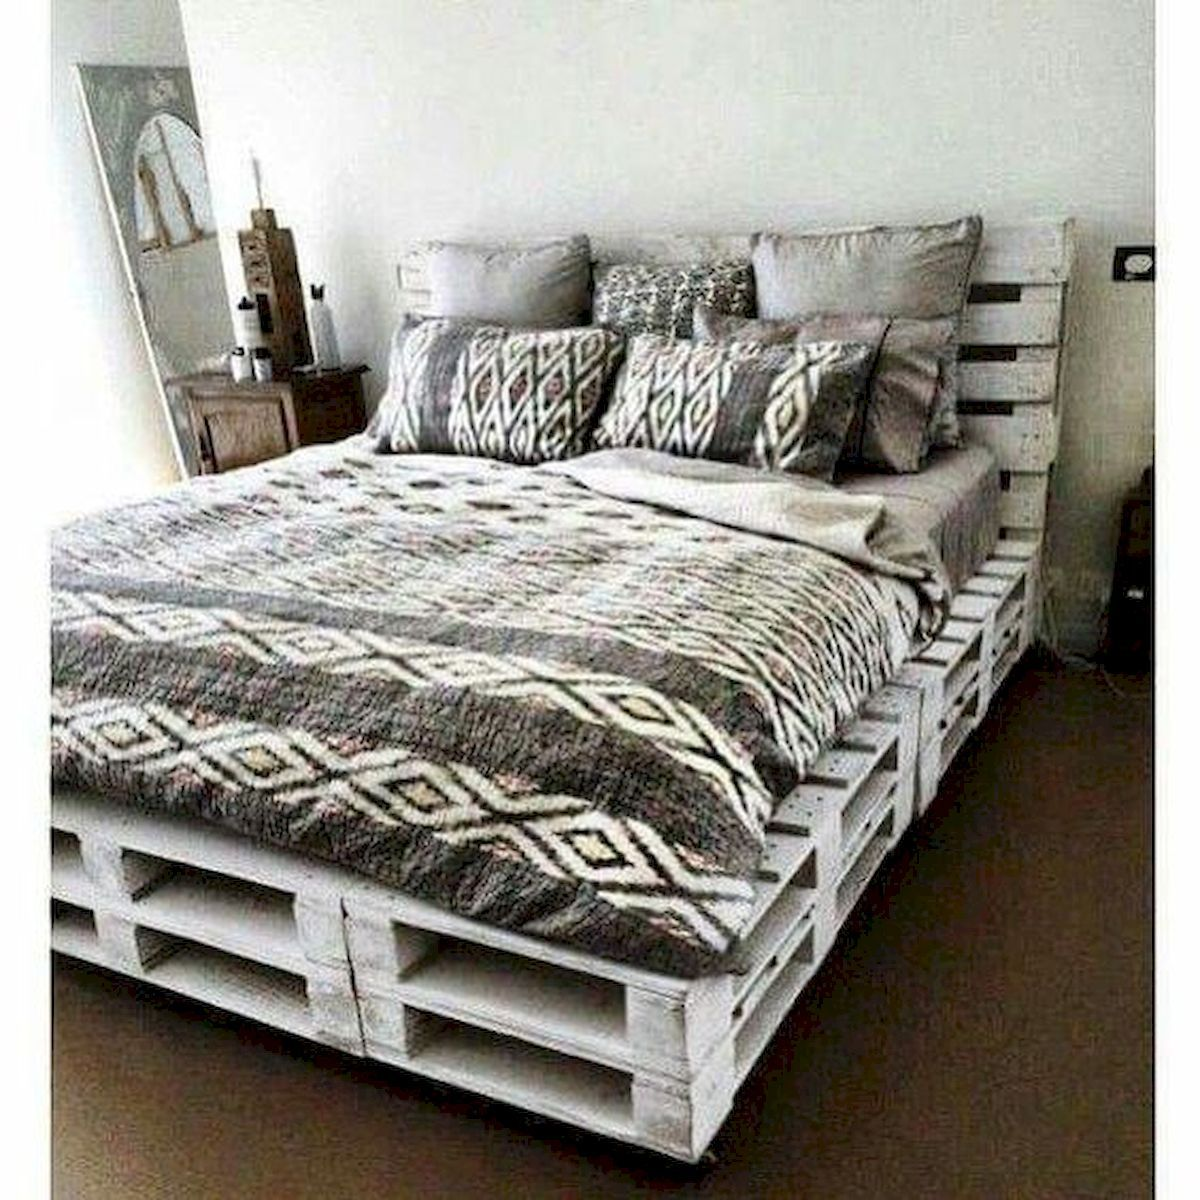 Photo of 50 Creative Recycled DIY Projects Pallet Beds Design Ideas – CoachDecor.com